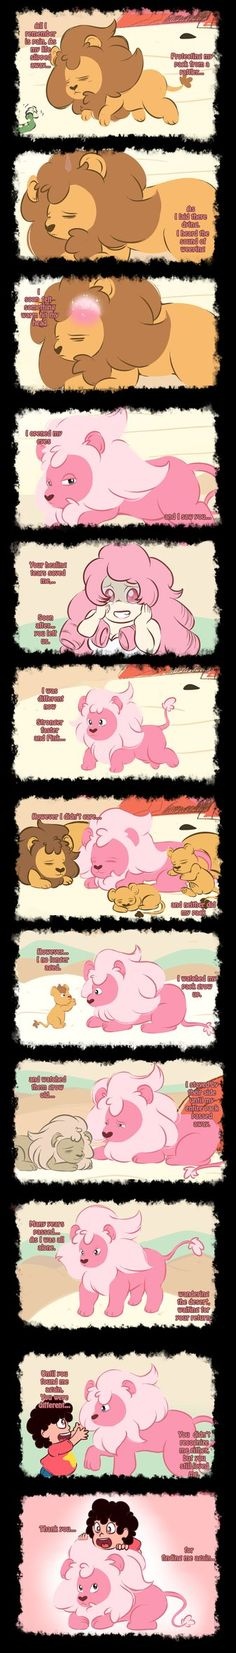 Steven Universe_-_Lion Comic by ProjectHalfbreed on DeviantArt